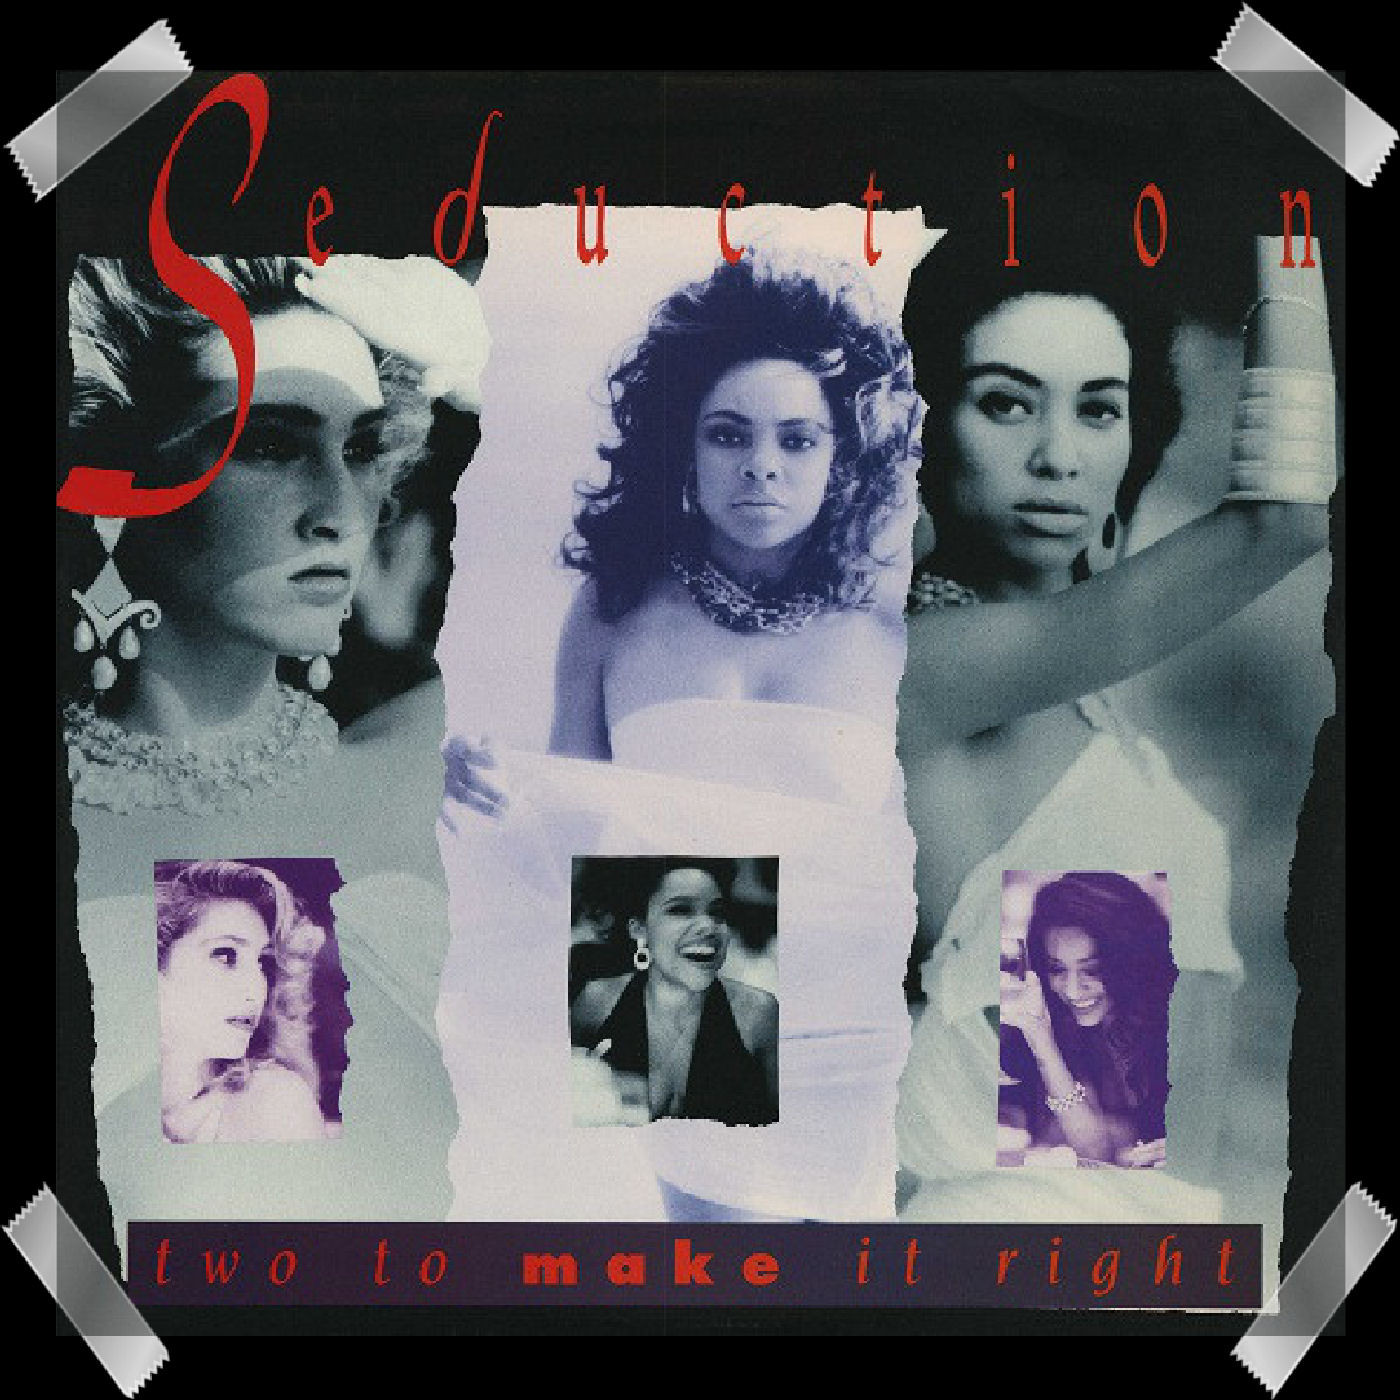 14. Seduction - Two To Make It Right